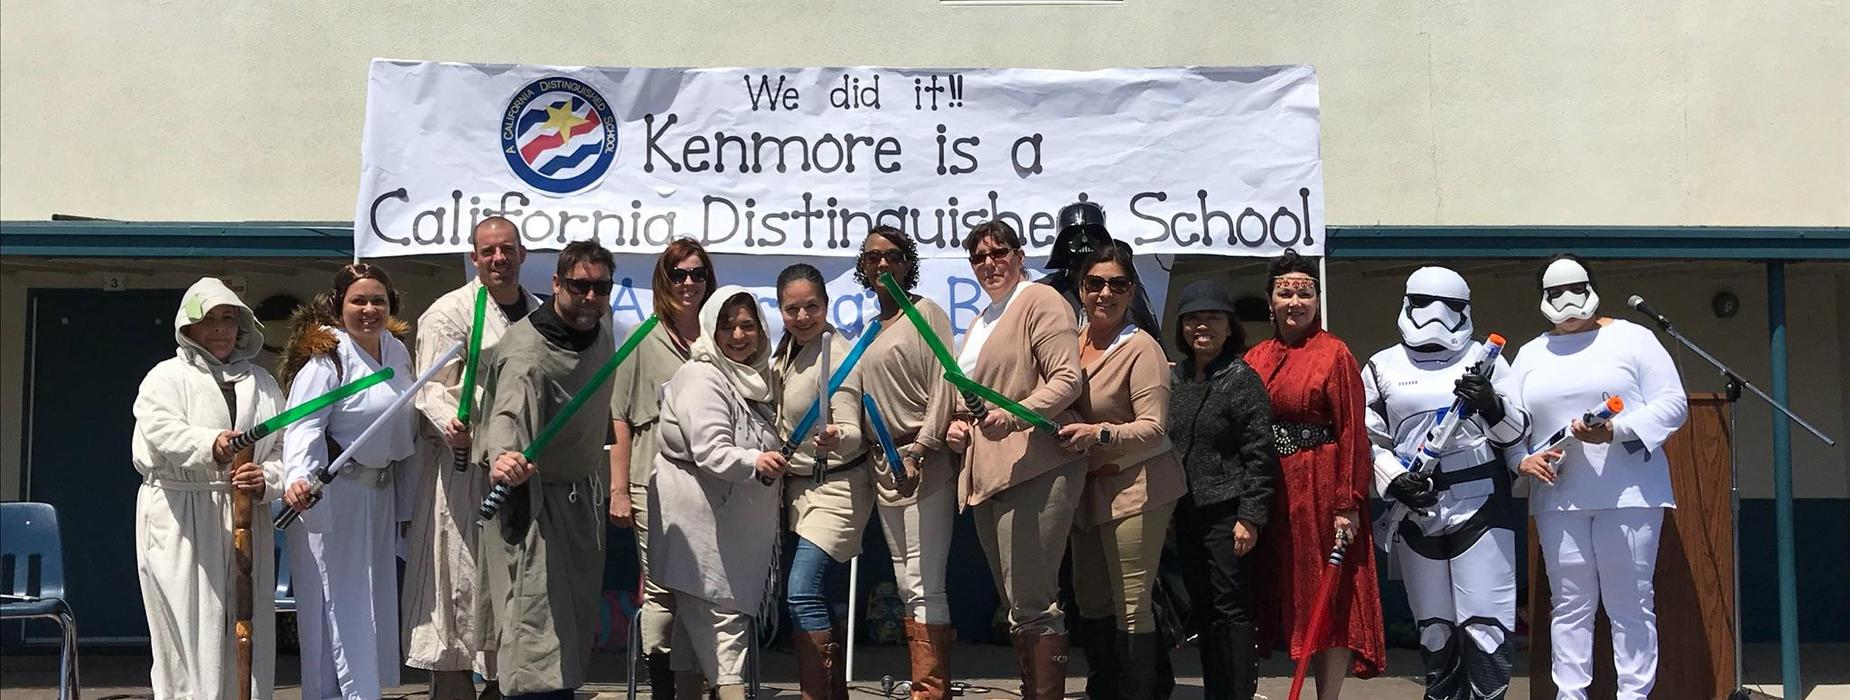 Kenmore staff in Star Wars costumes